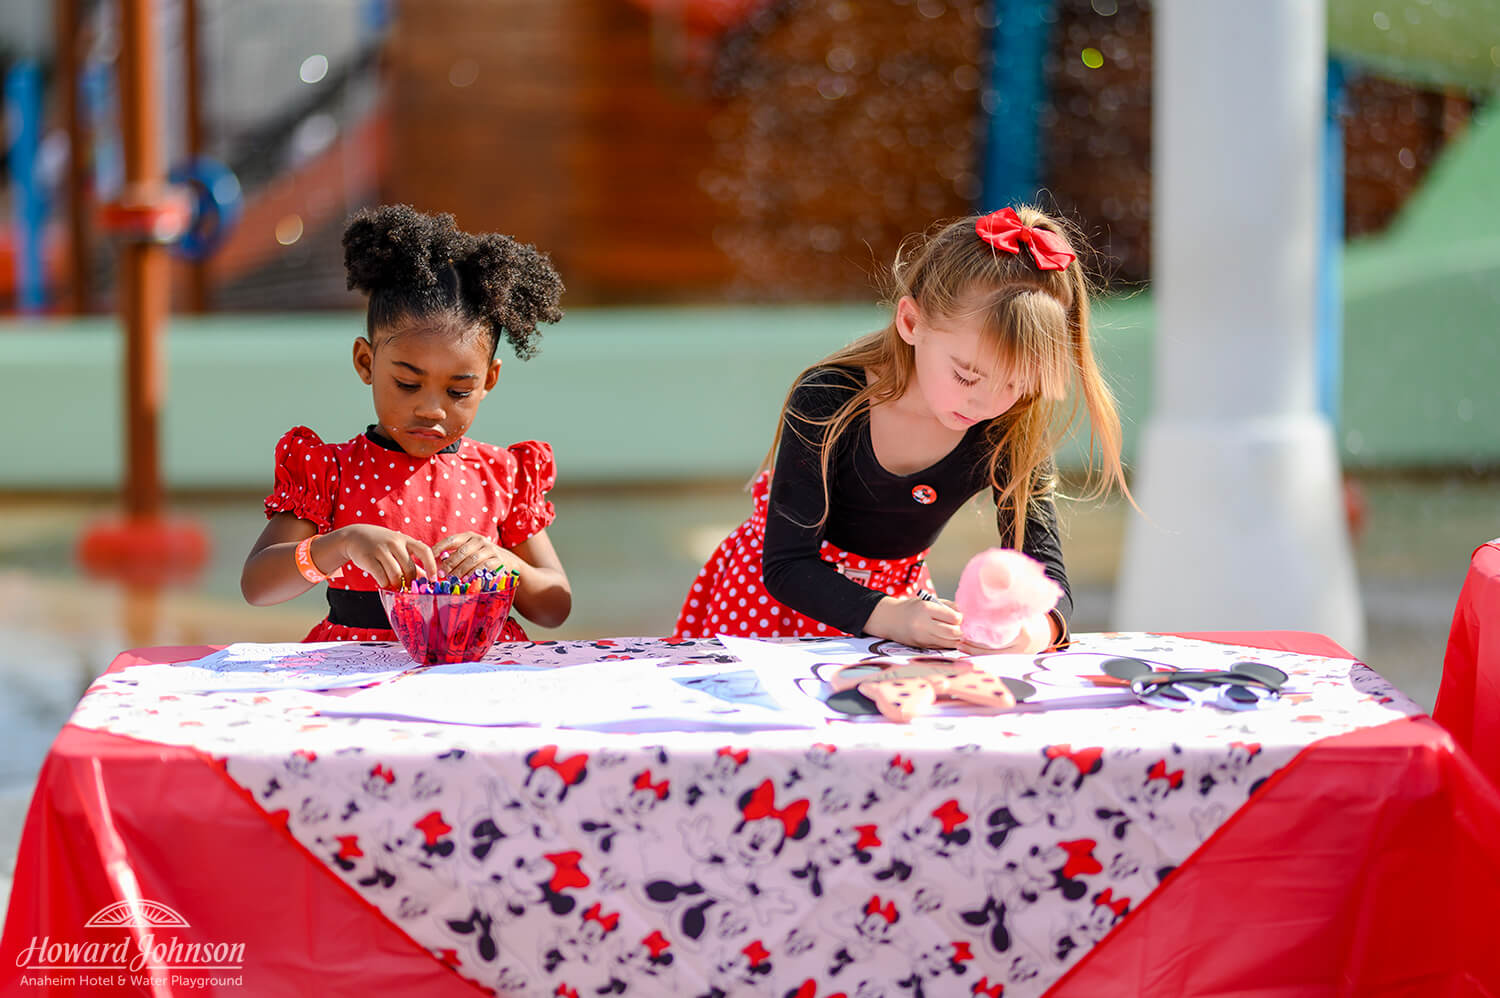 Two young girls color with crayons on a Minnie Mouse craft table